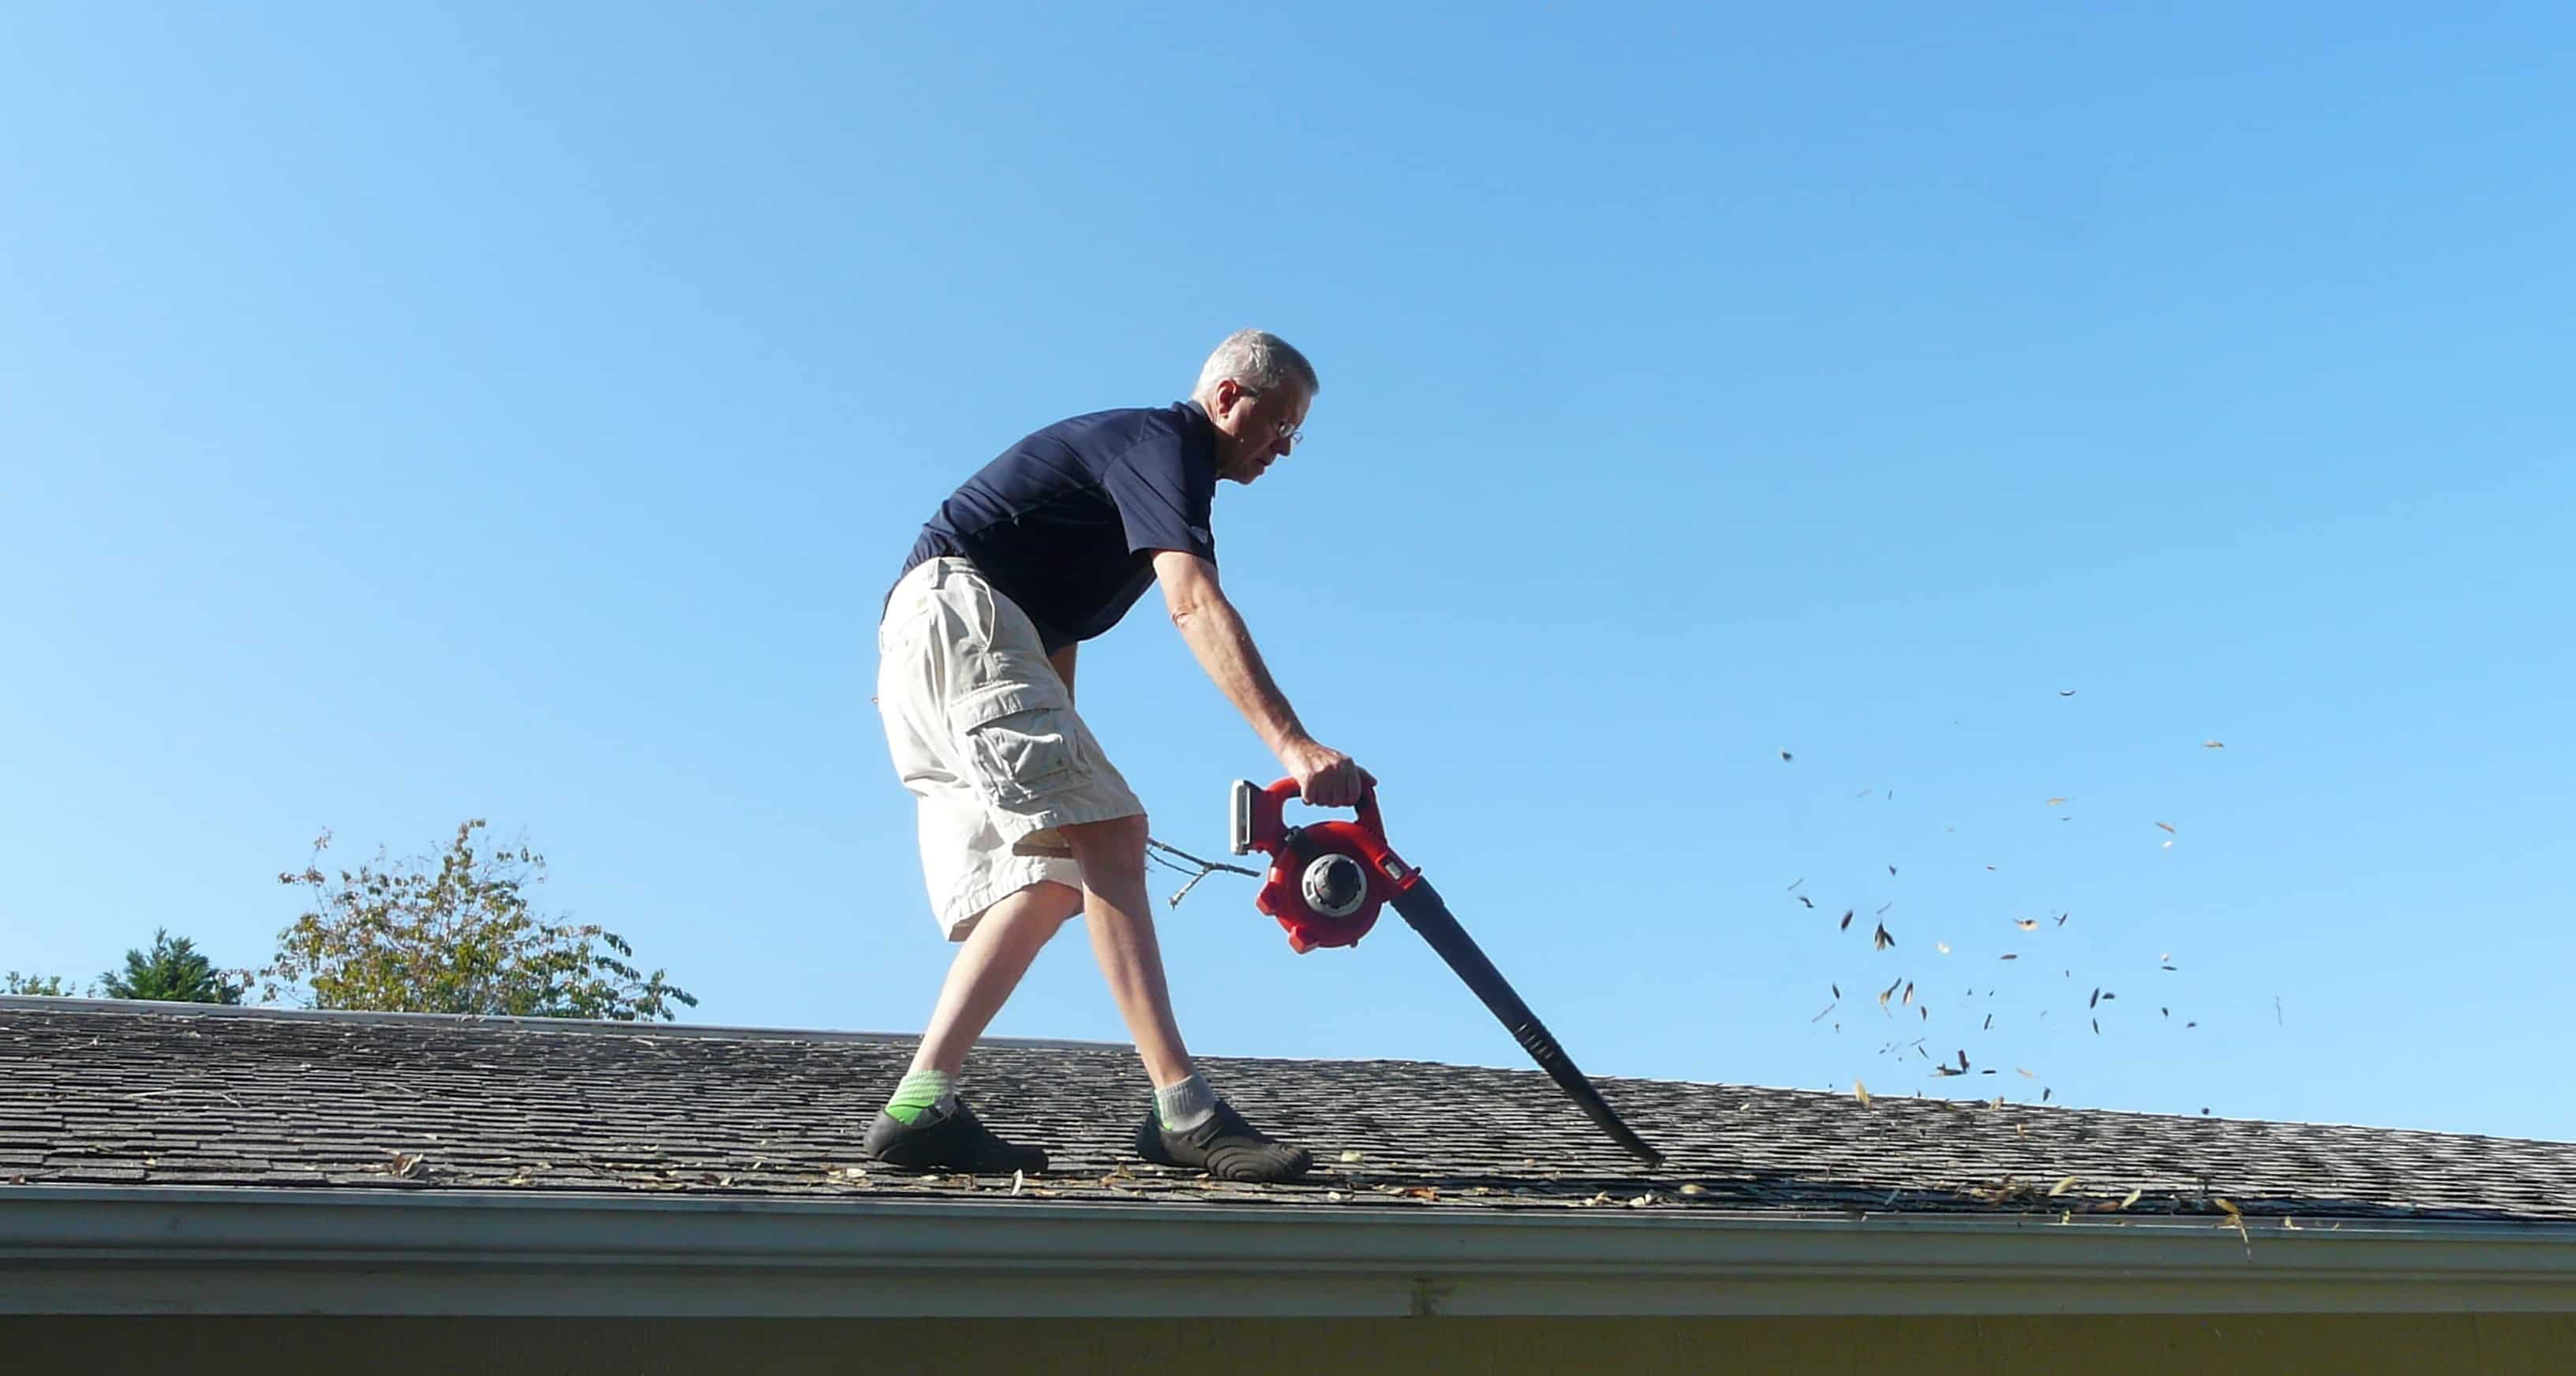 A man is on a roof and is using a blower to remove leaves and excess dirt from the gutter.